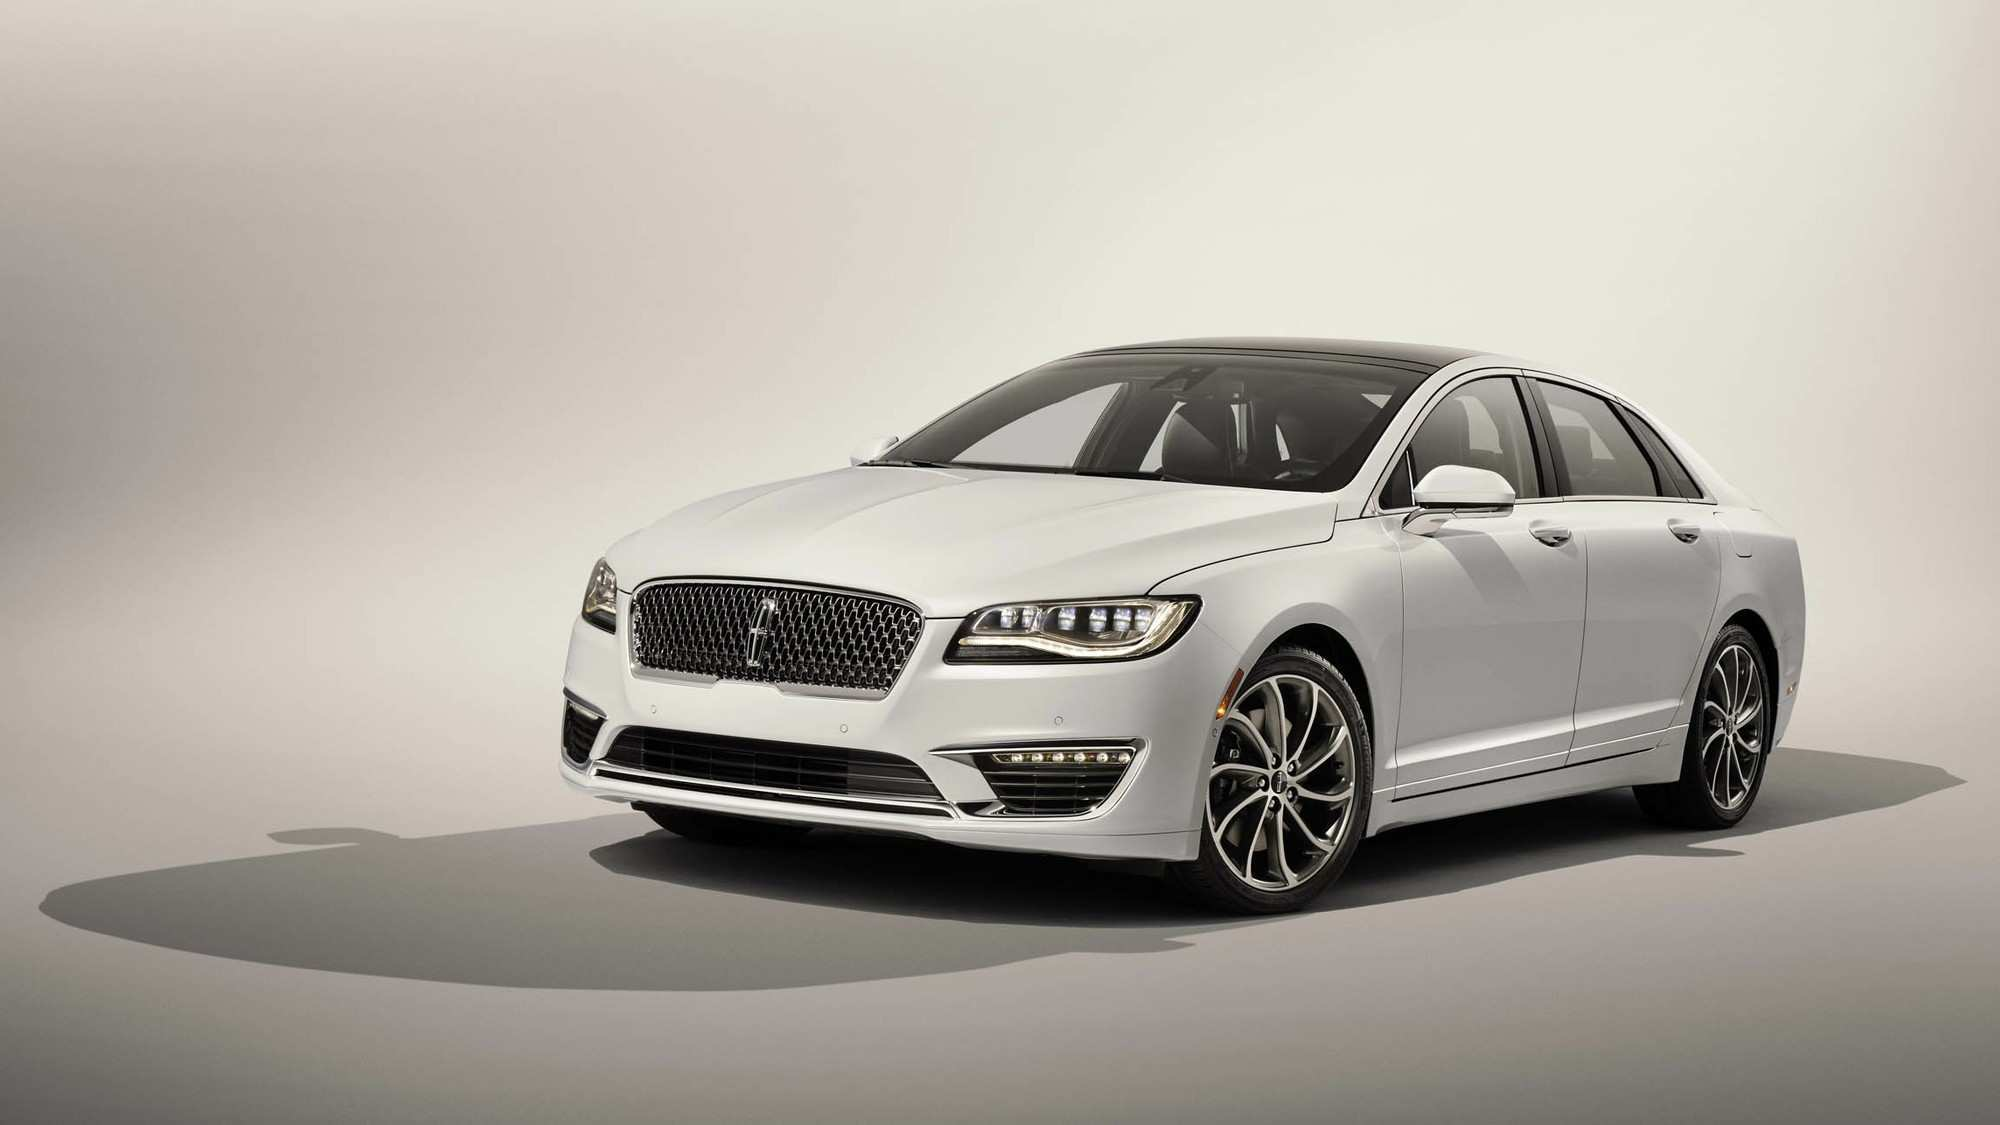 15 All New 2019 Spy Shots Lincoln Mkz Sedan Redesign And Review